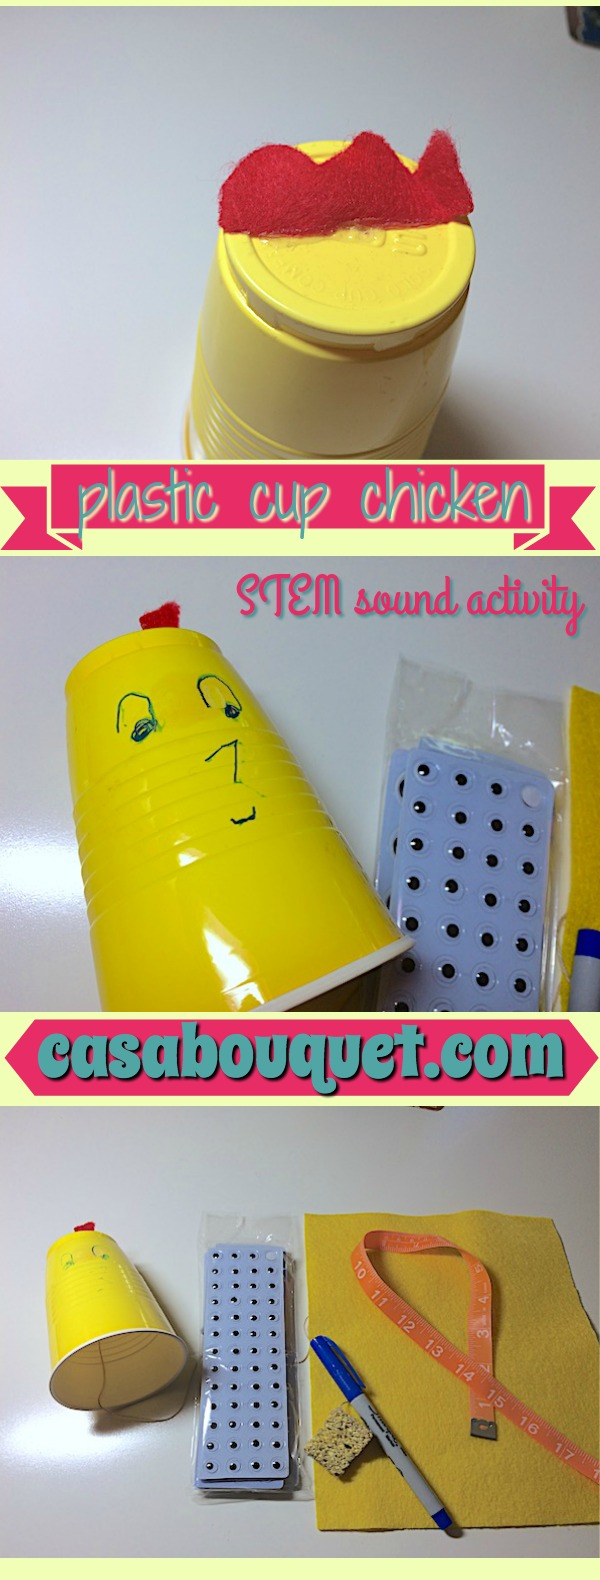 Plastic cup chicken sound activity uses a cup, string, and sponge to make crazy music. Kids learn sound and vibration.